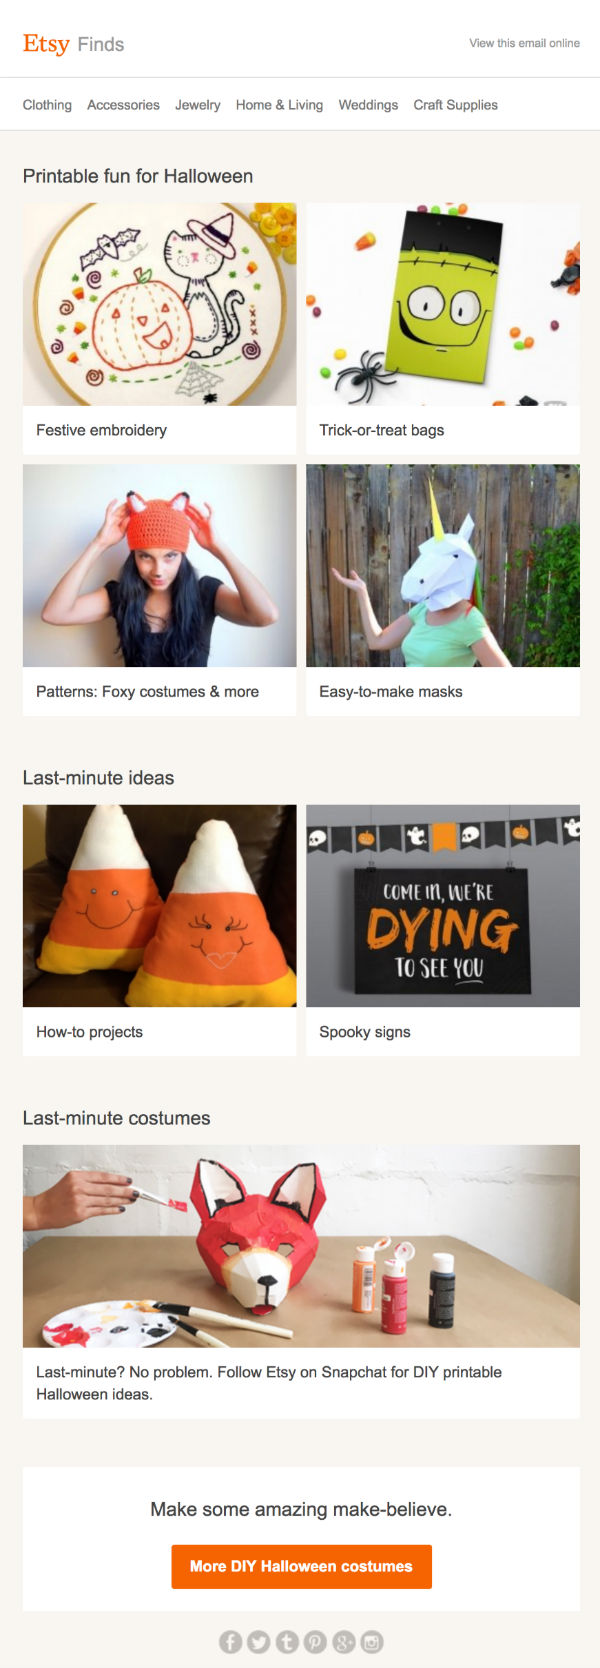 Last minute DIY Halloween Costumes Etsy Email